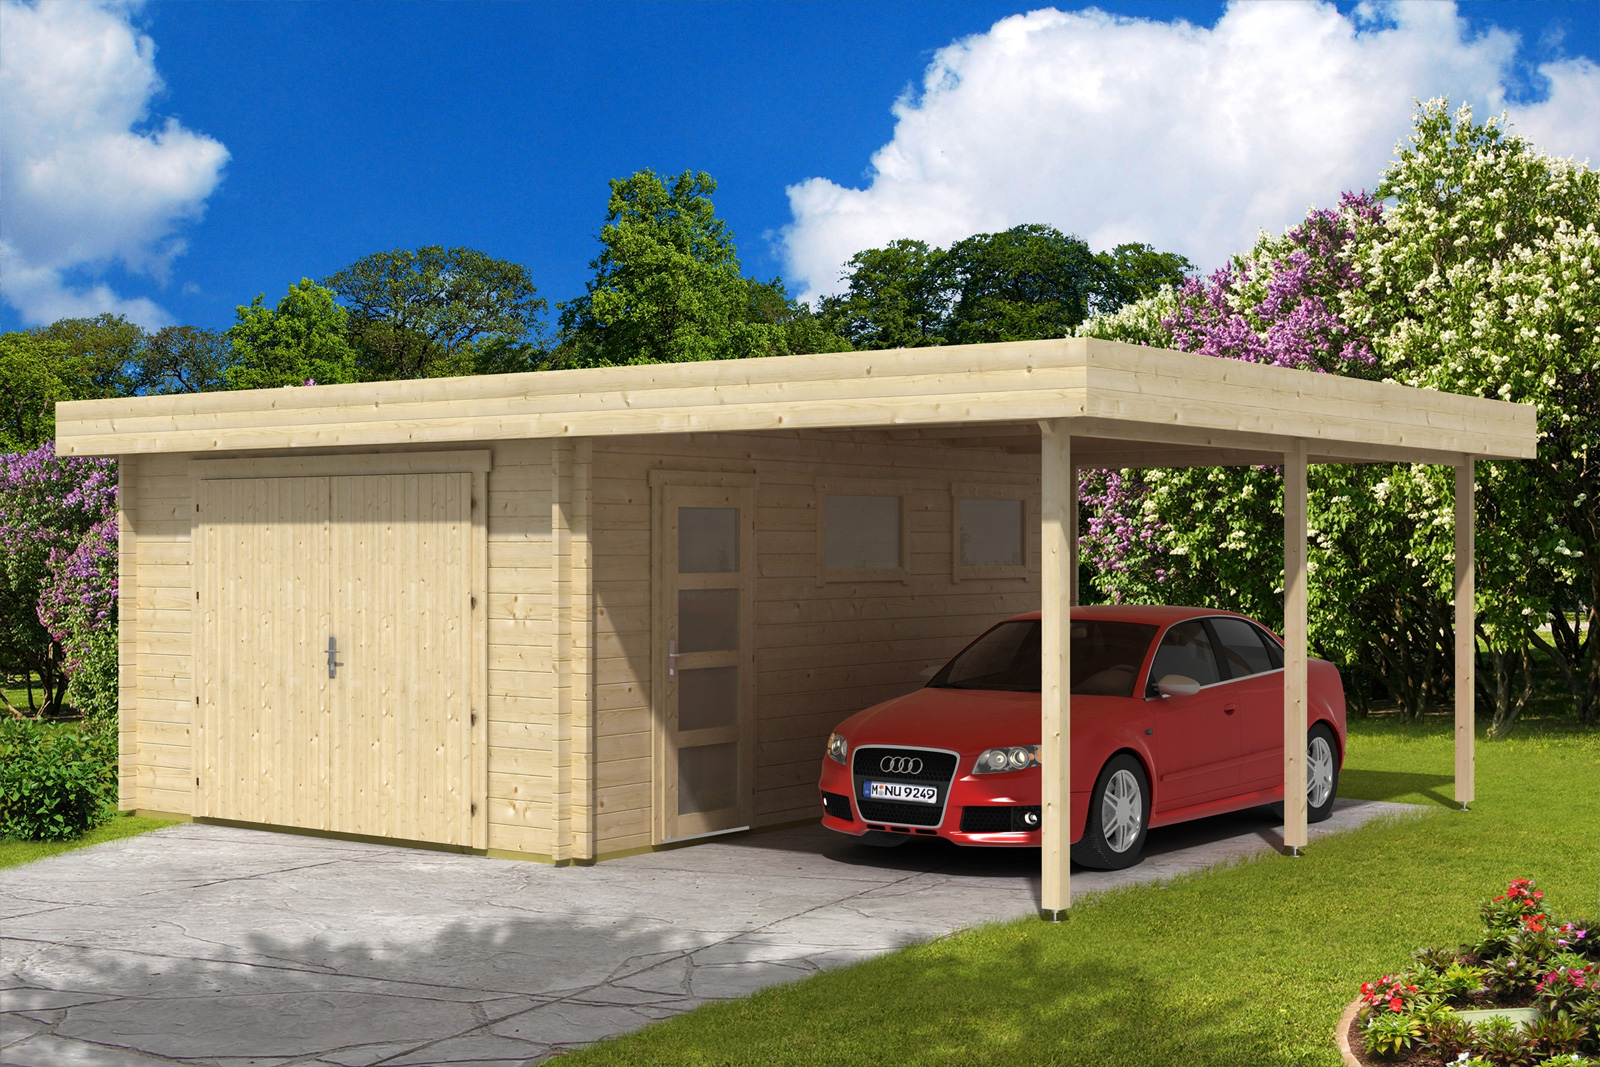 flachdach holzgarage mit carport 44 iso holzgarage mit carport 44 iso. Black Bedroom Furniture Sets. Home Design Ideas